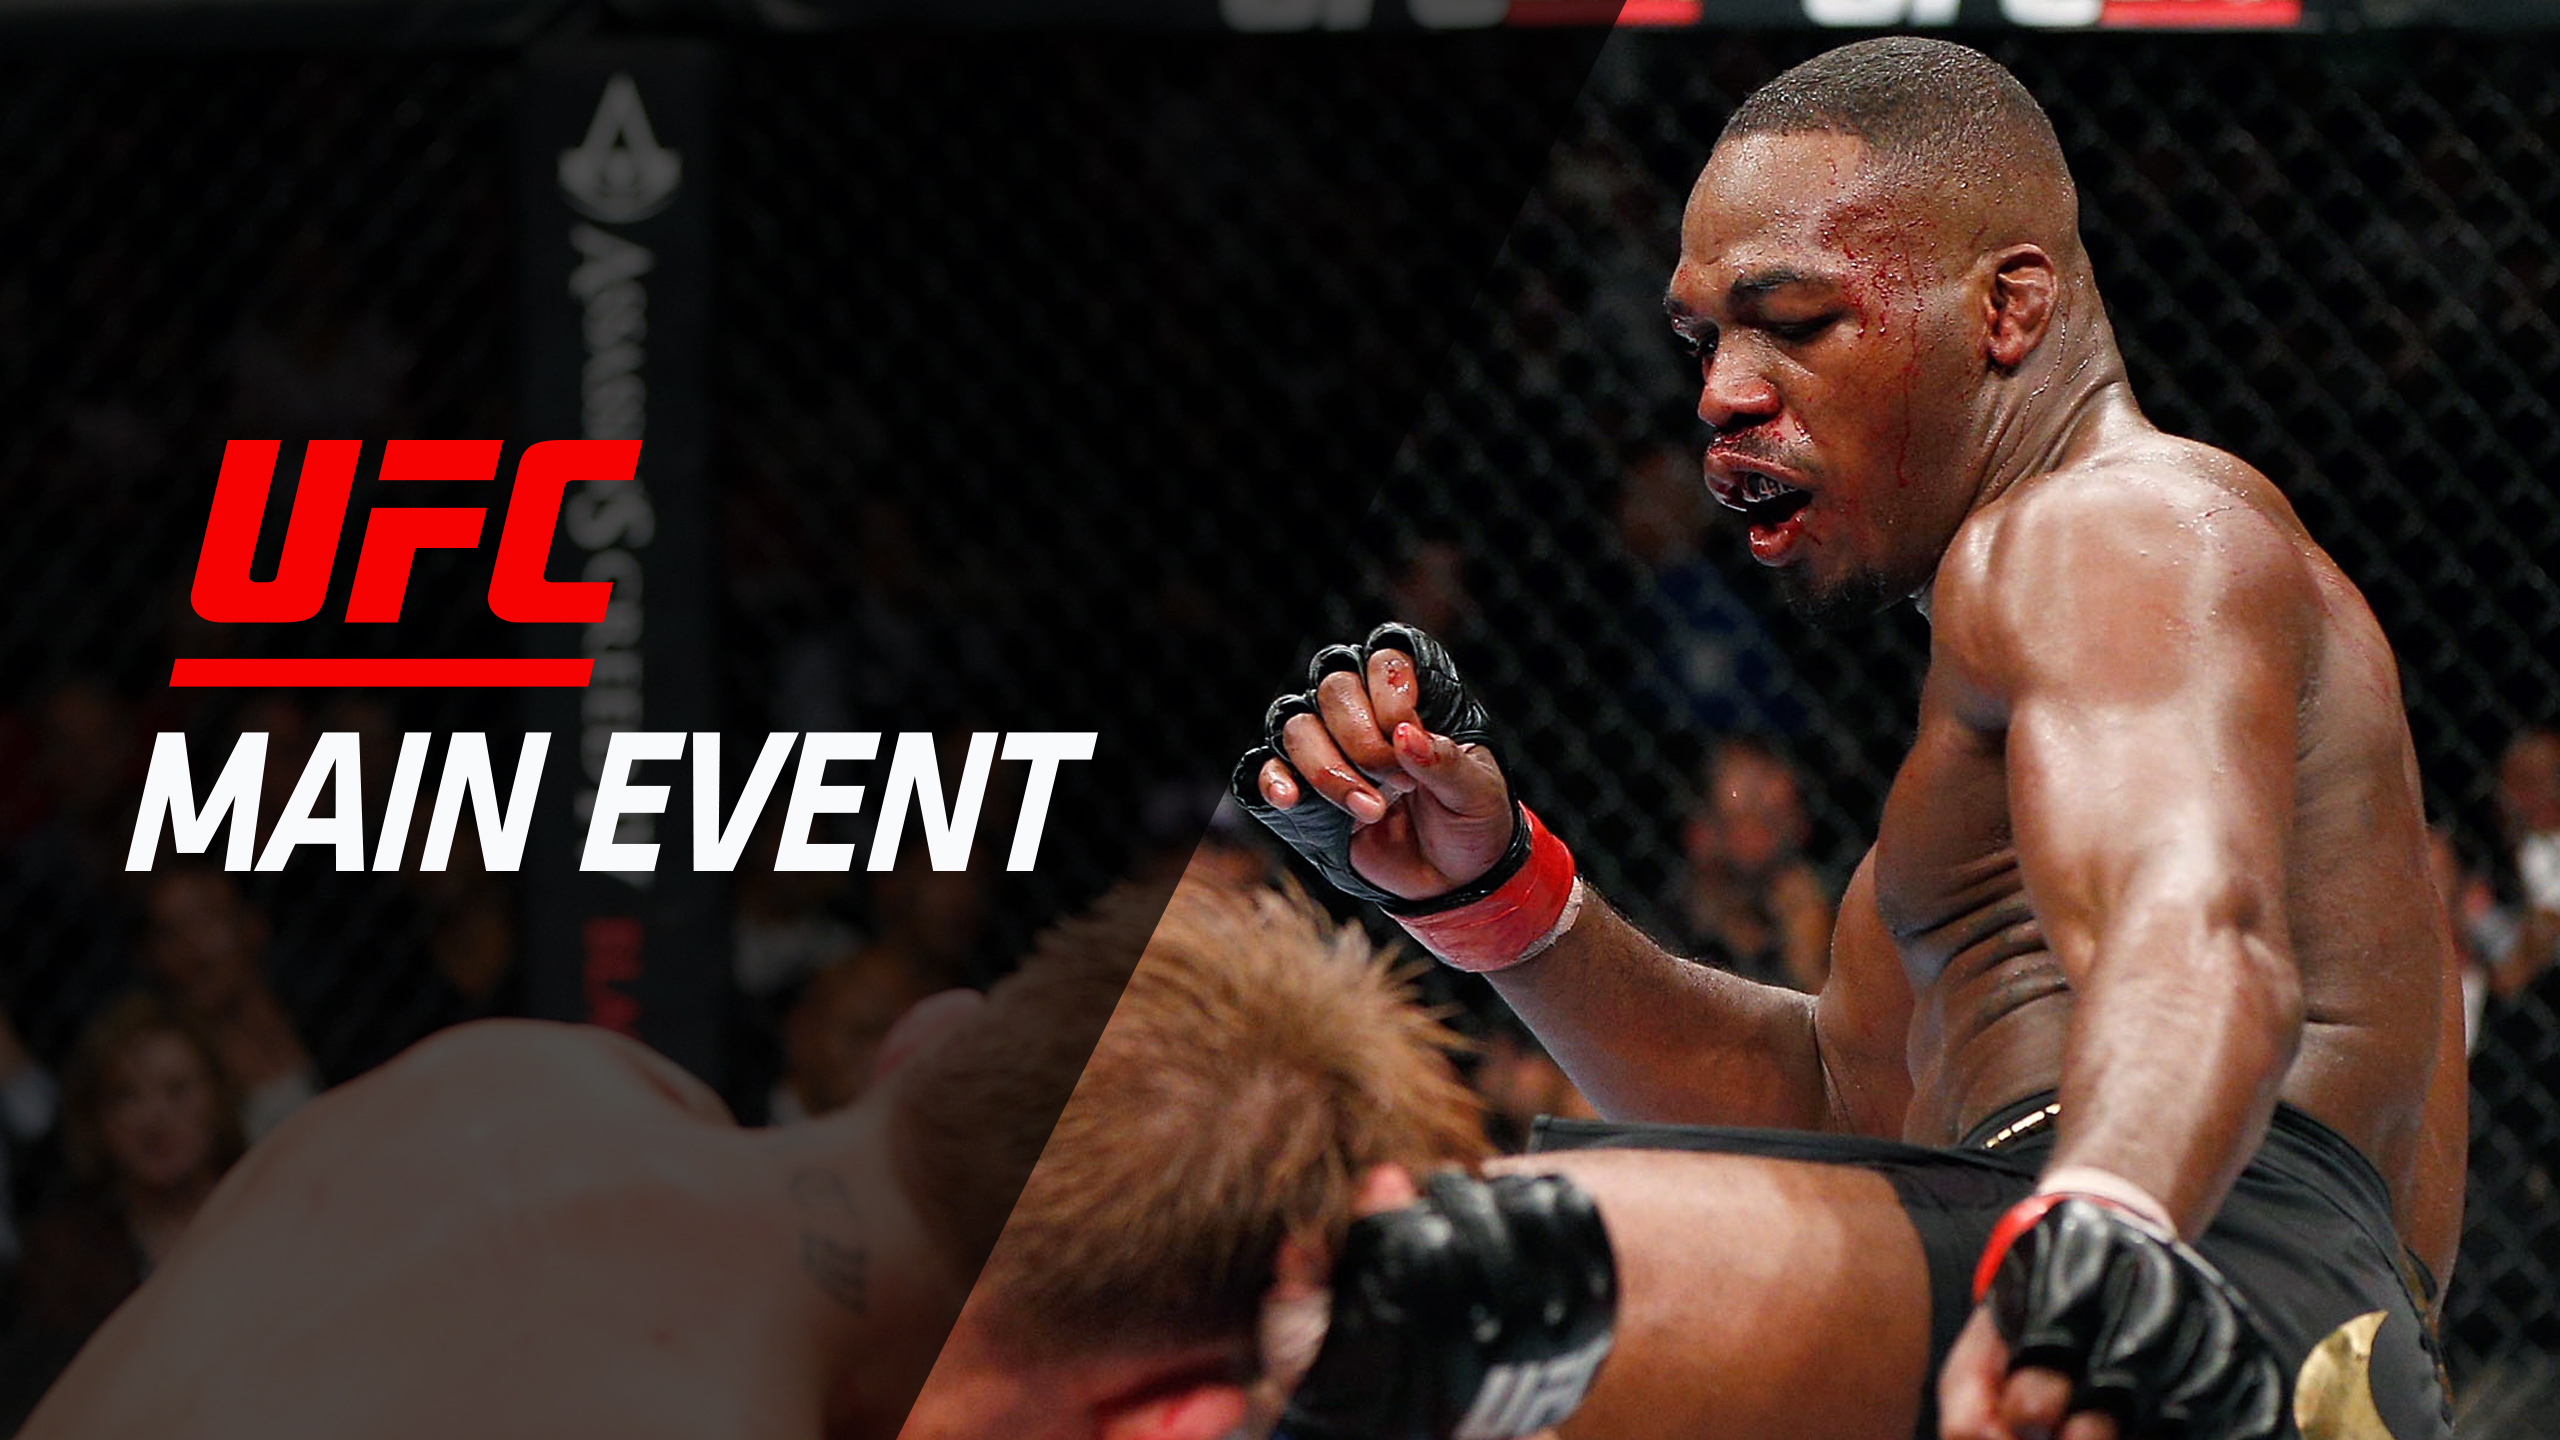 UFC Main Event: Jones vs. Gustafsson 1